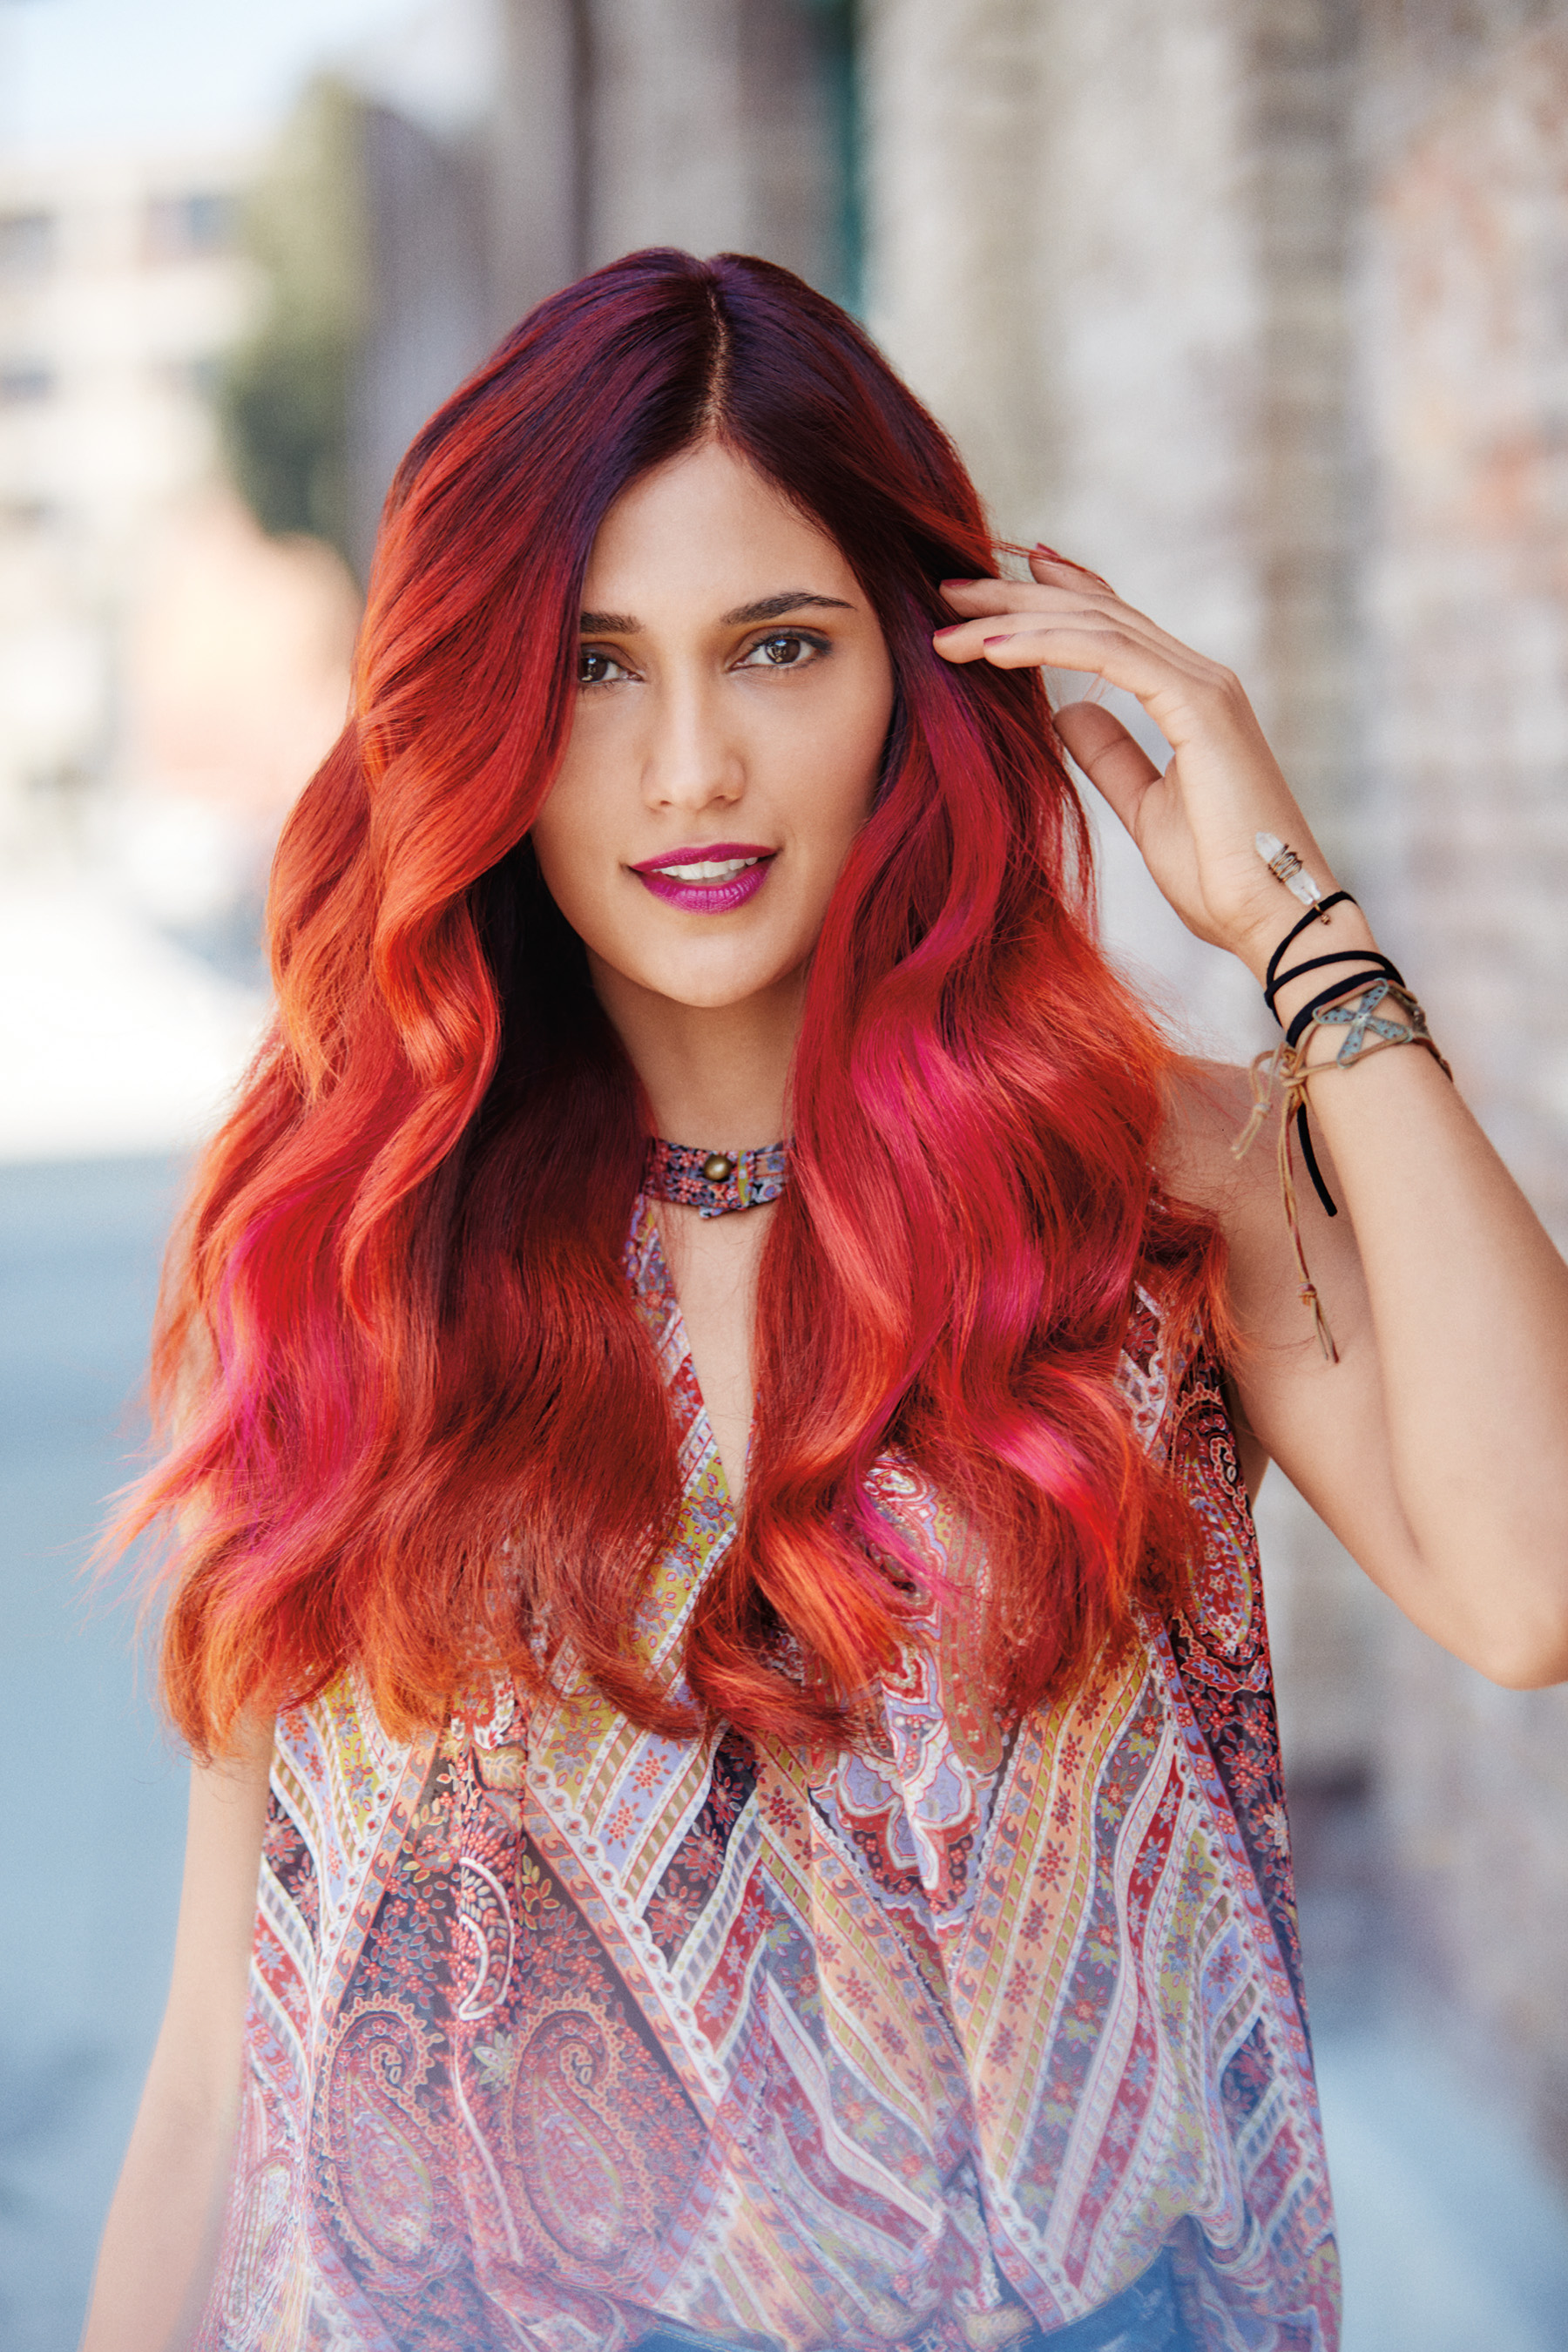 Clairol Professional Launches Permanent Vivid Hair Color For The